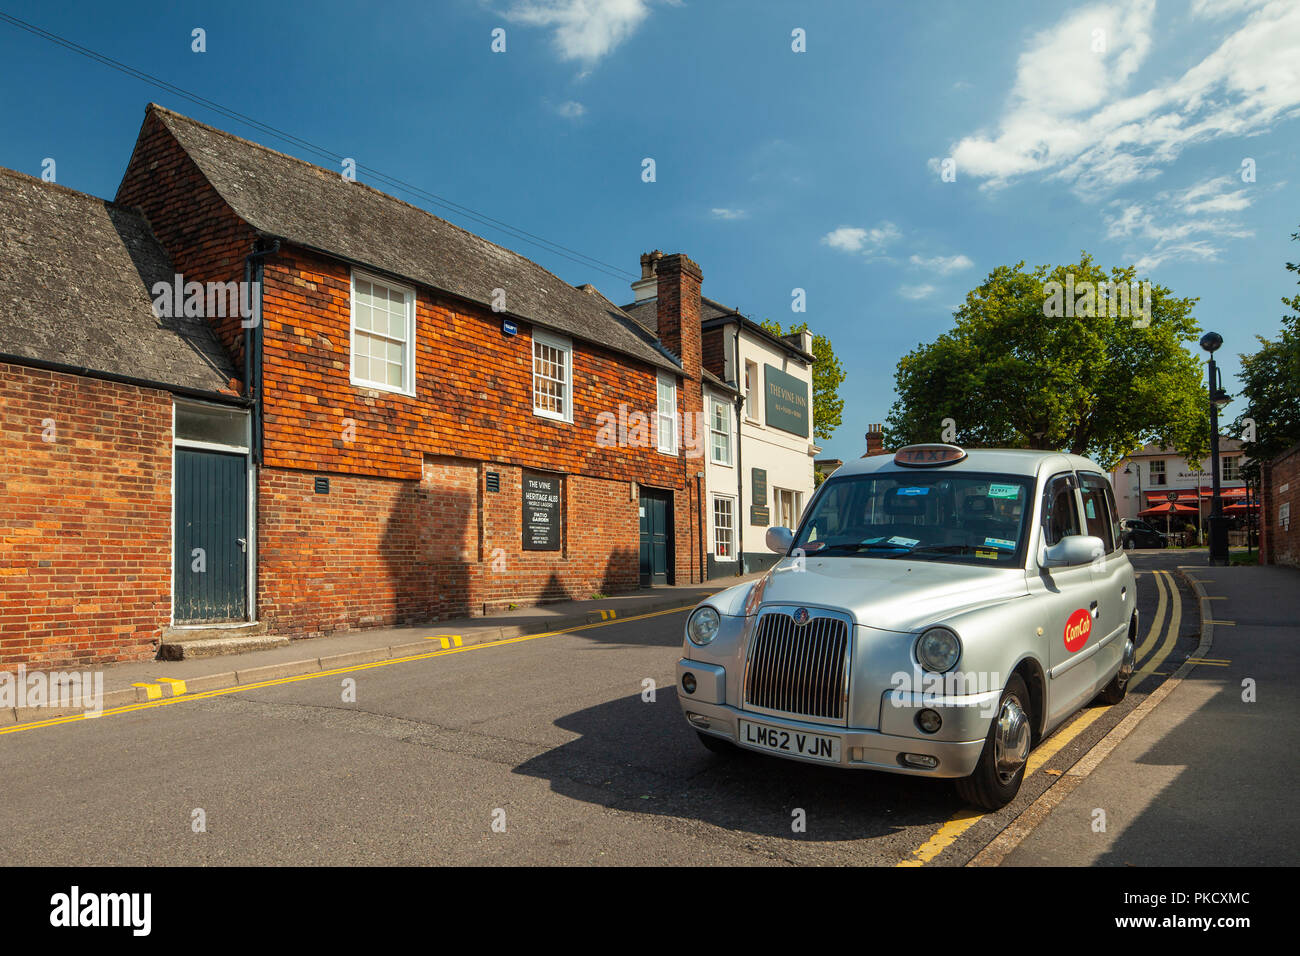 Late summer afternoon in Tenterden, Kent, England. - Stock Image